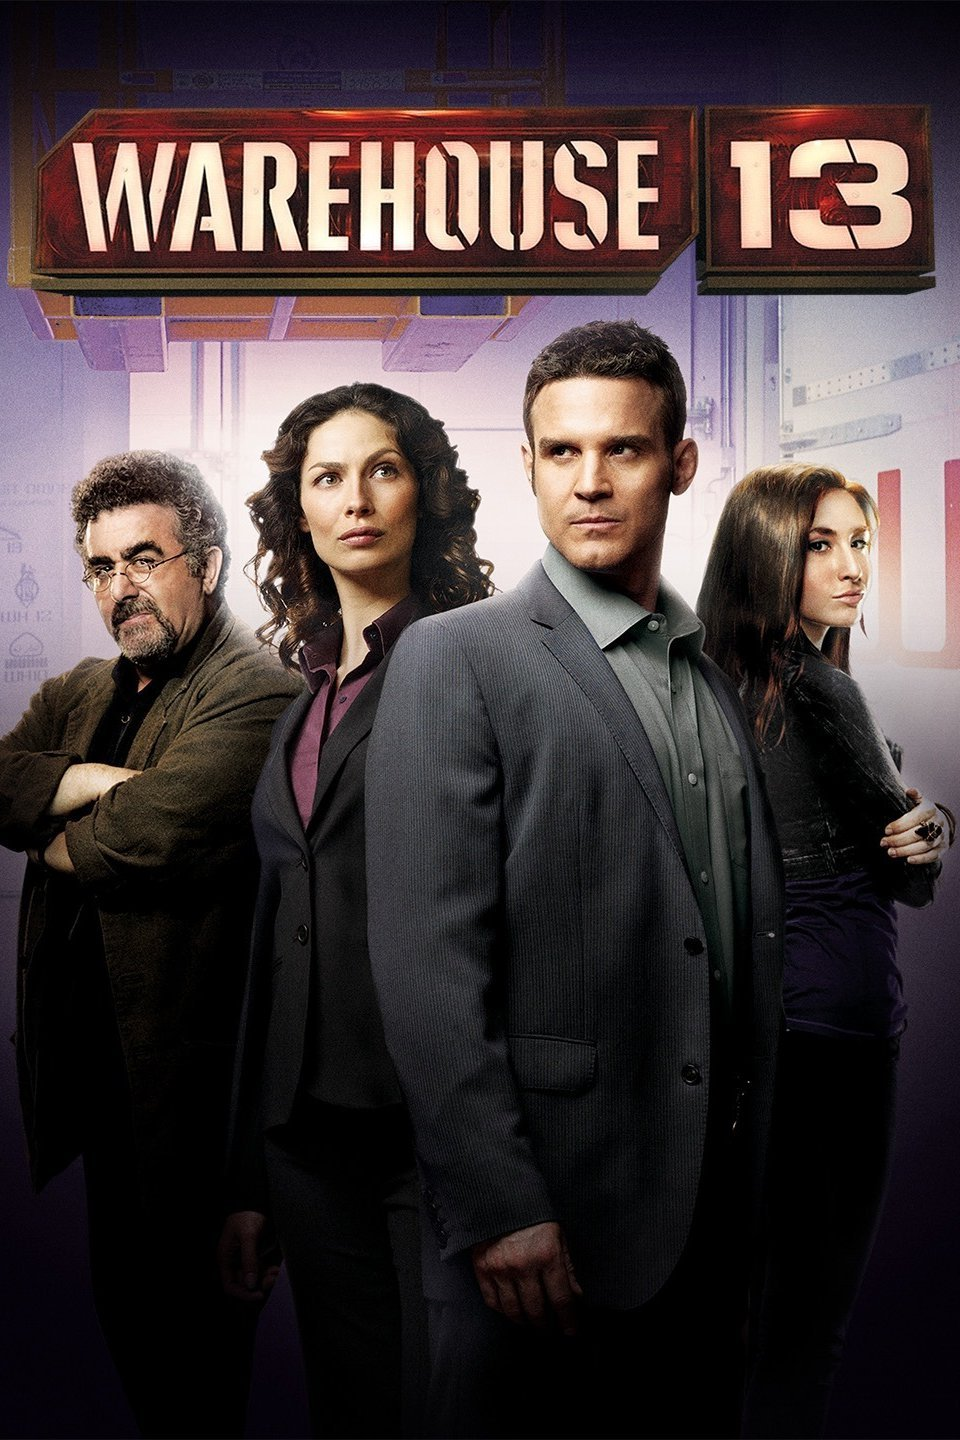 Warehouse 13 Tv Series Download Season 2 Complete 480p HDTV Micromkv